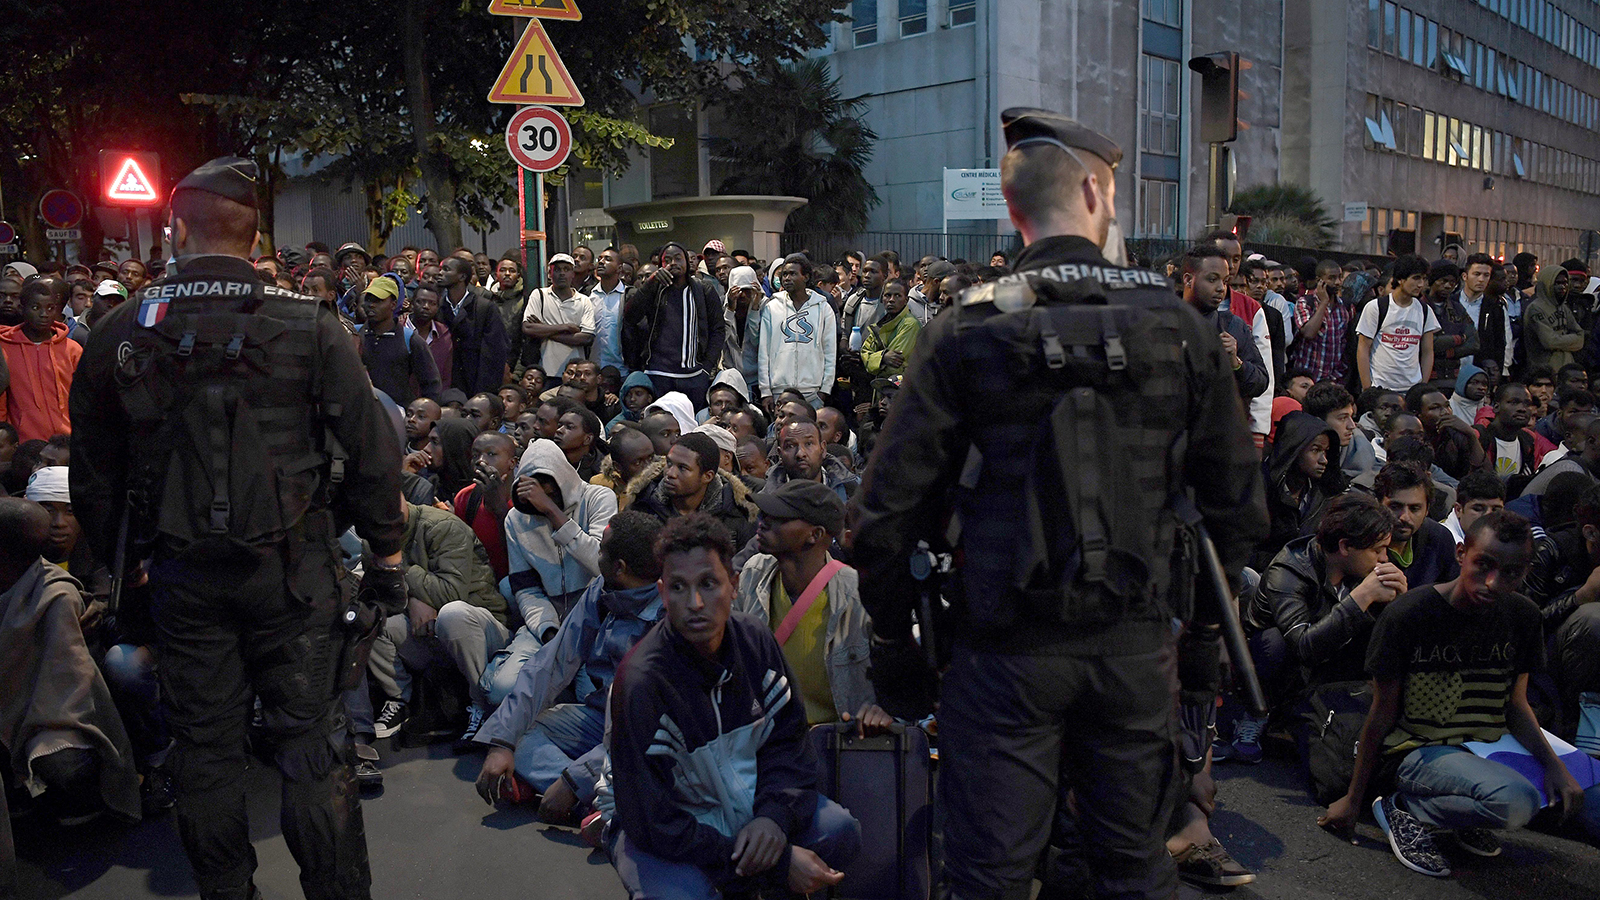 Migrants: Exiled on the streets of Paris - FRANCE 24